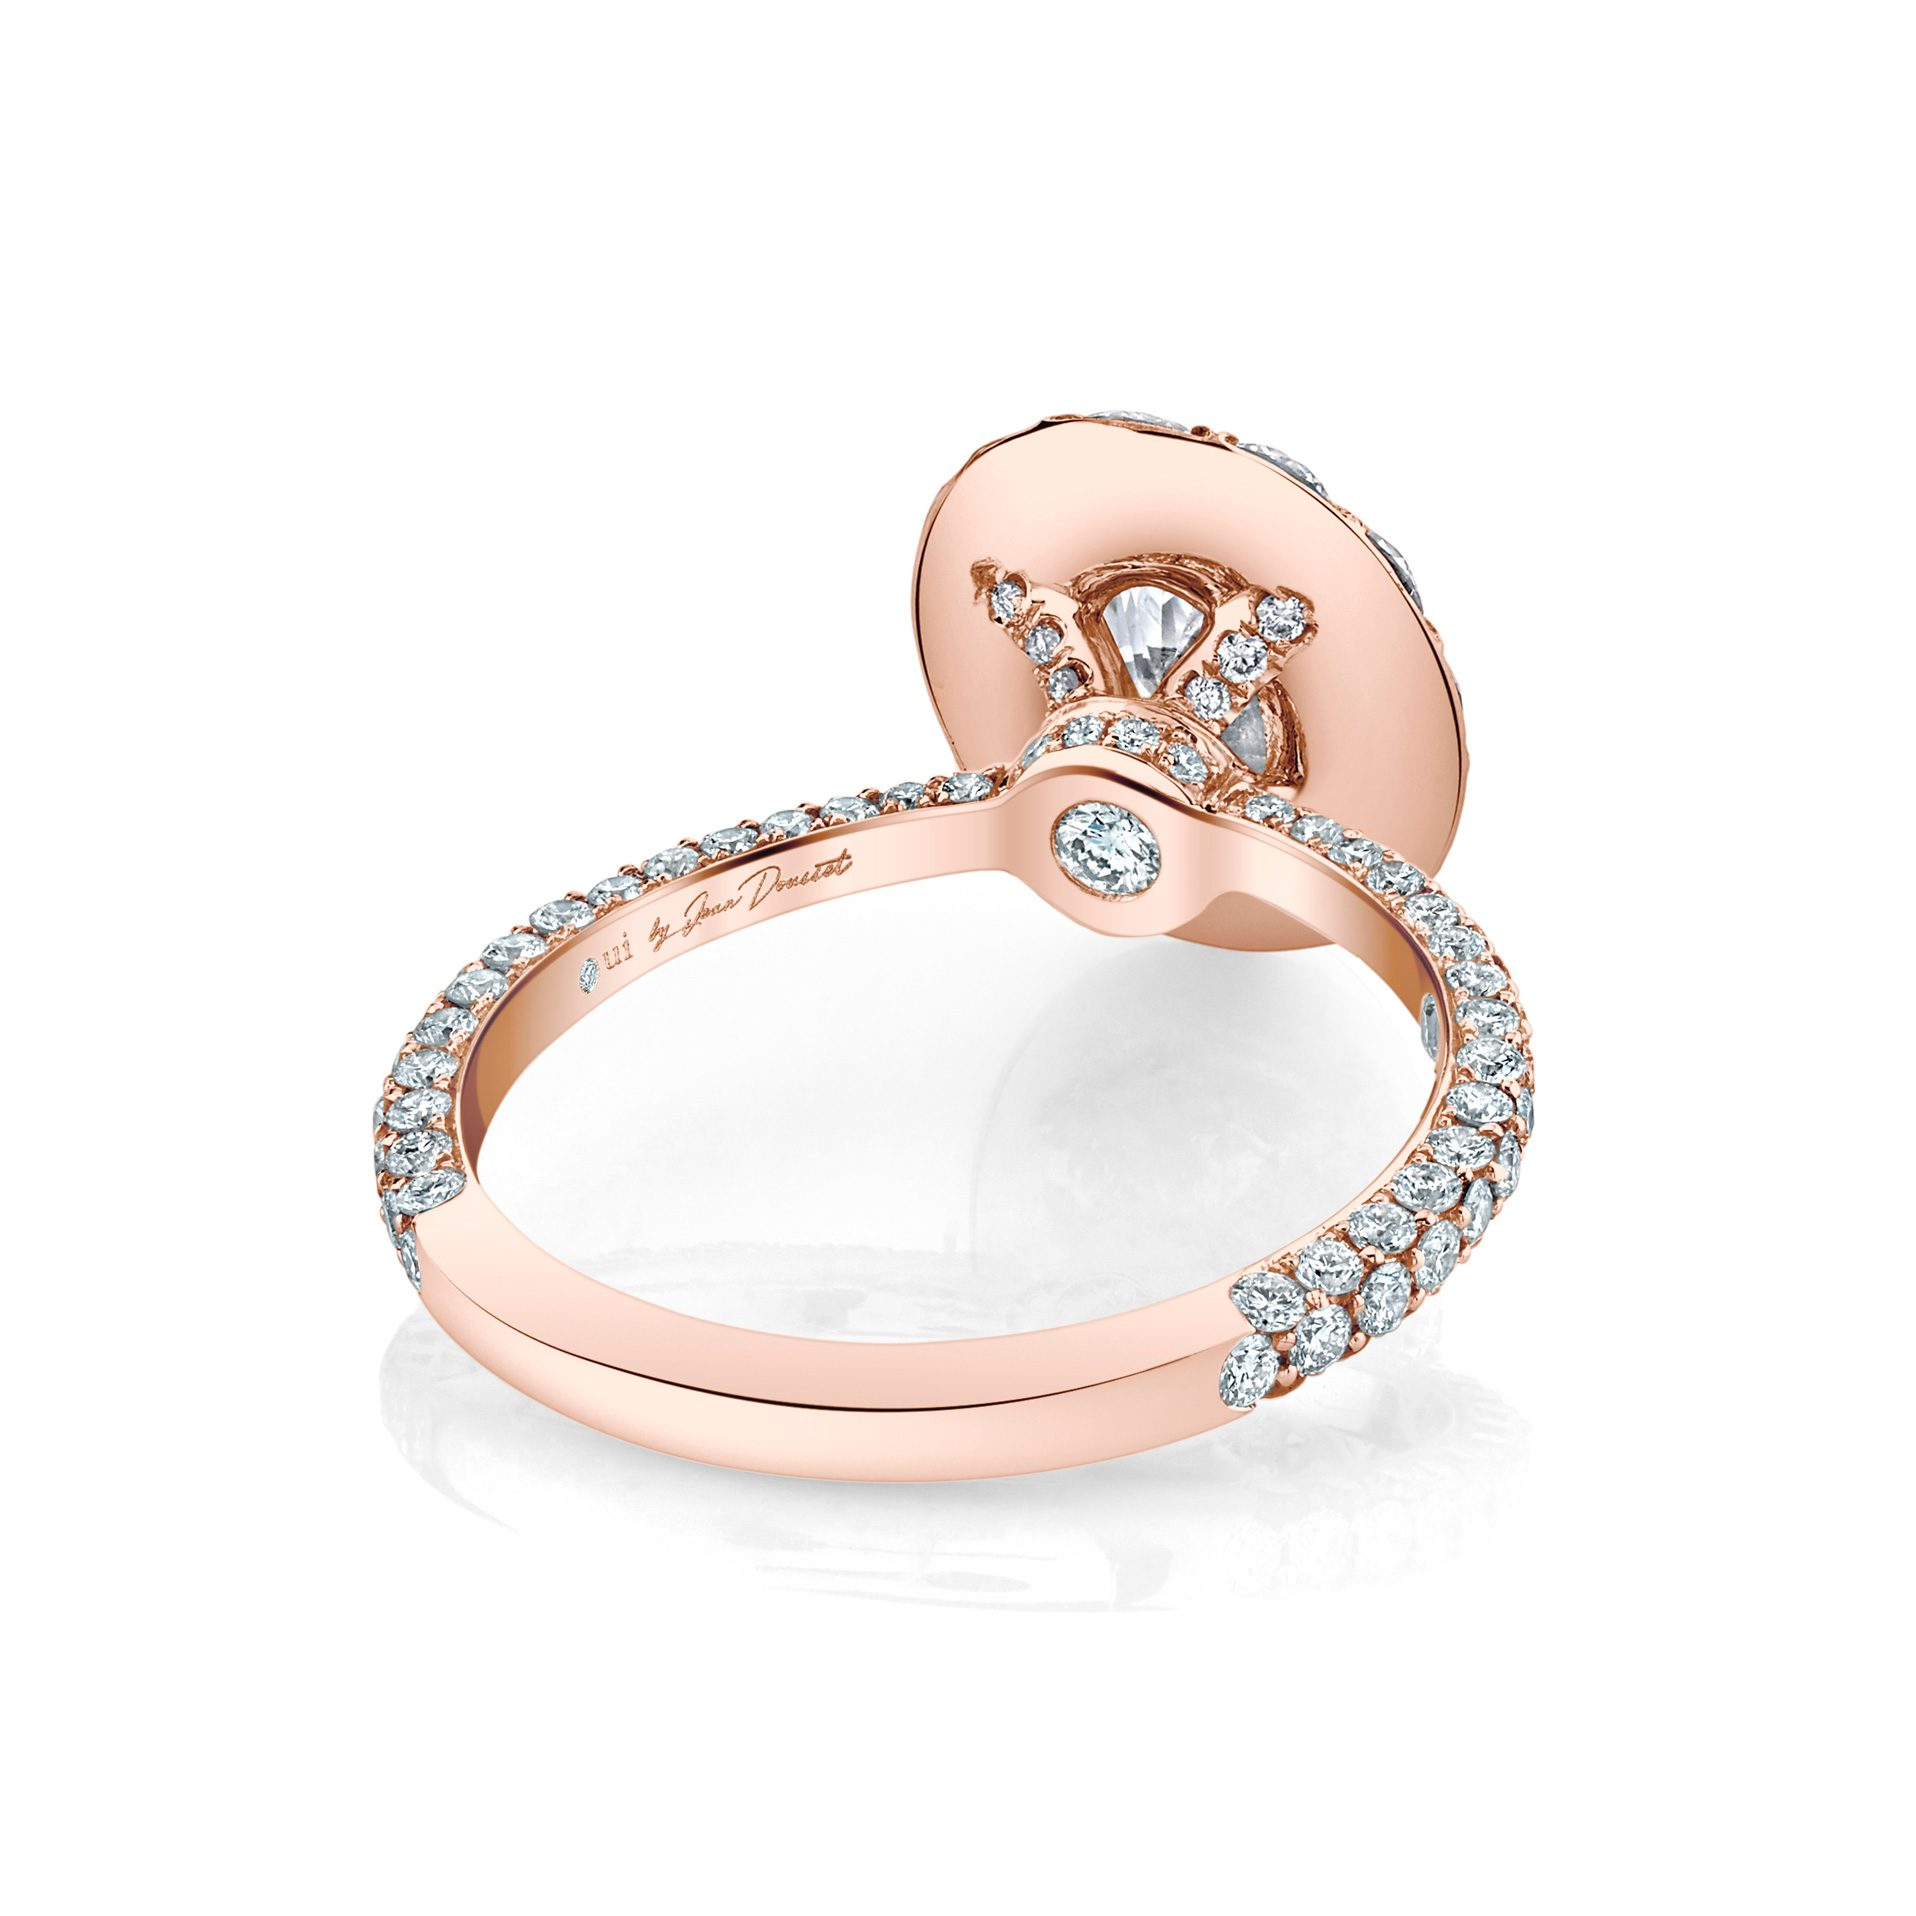 Jacqueline Floating Oval Seamless Solitaire® Engagement Ring with diamond pavé in 18k Rose Gold Back View by Oui by Jean Dousset